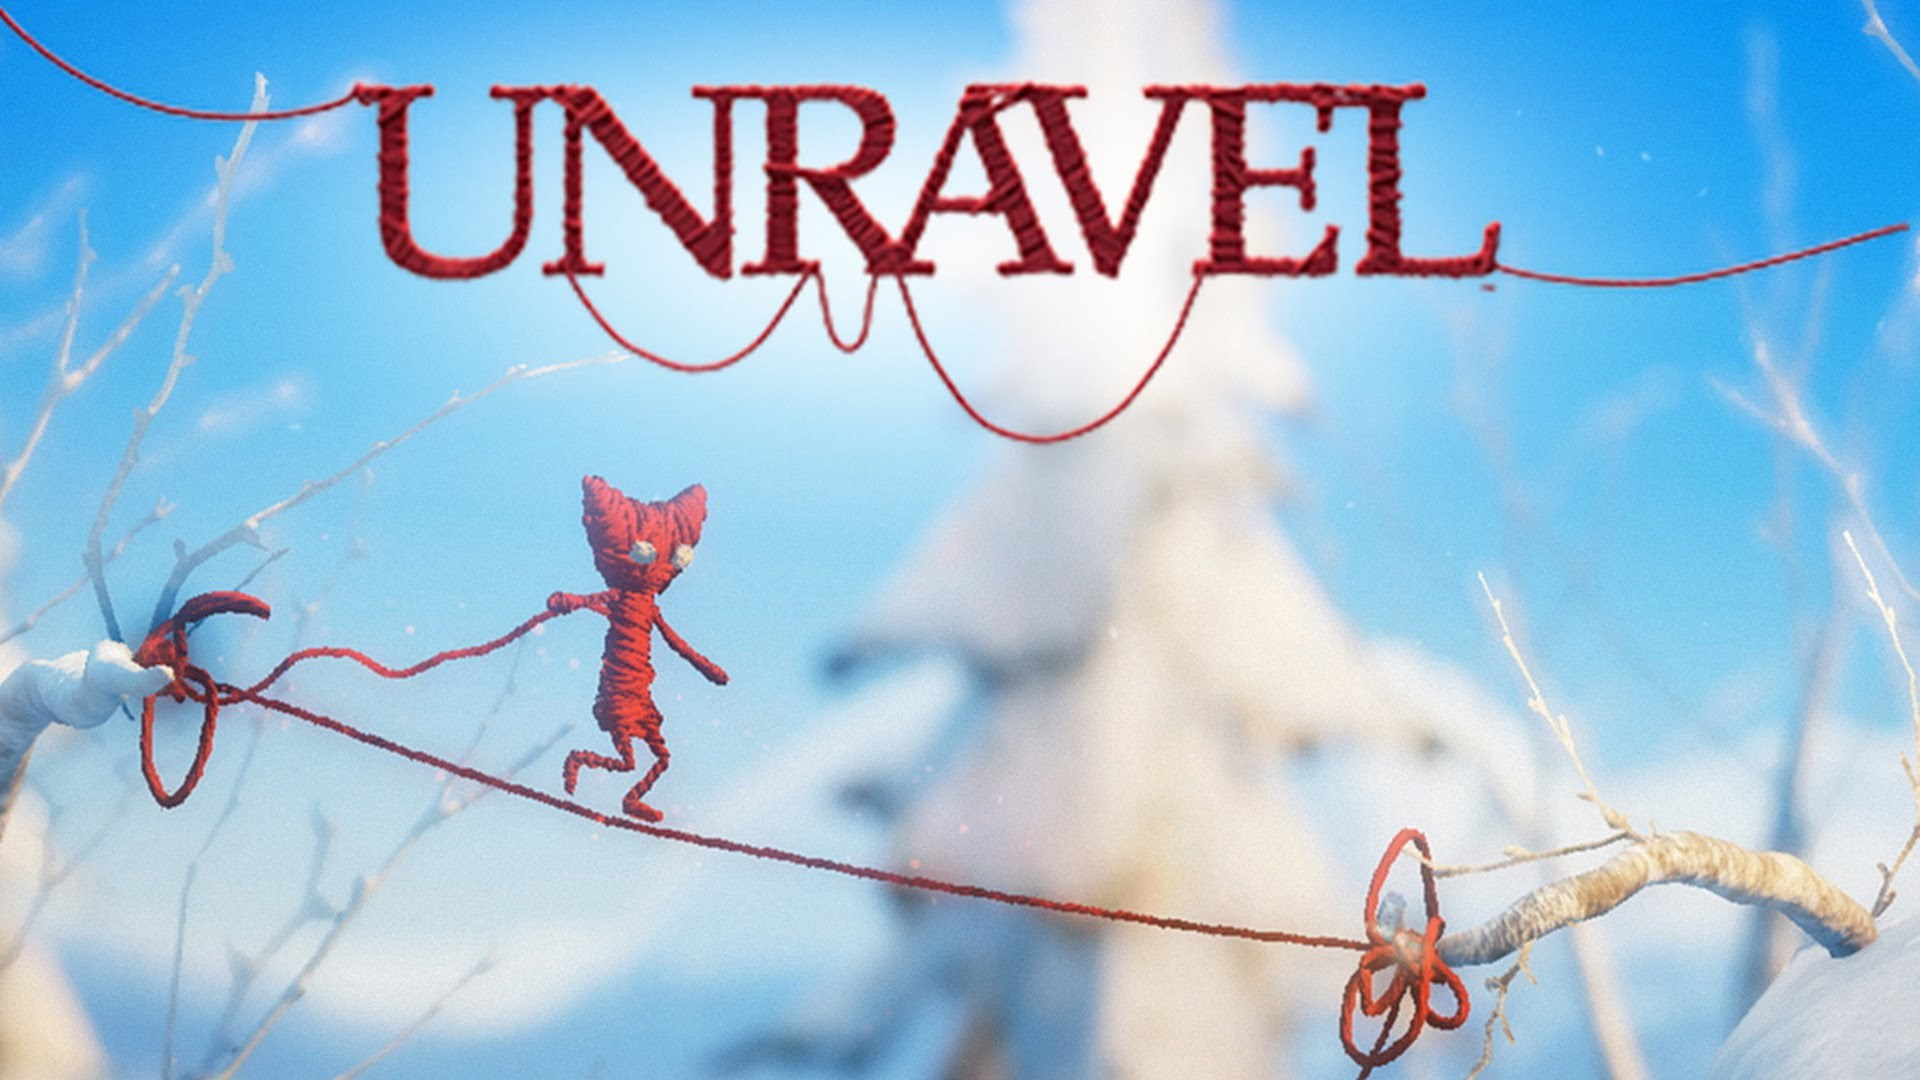 Unravel Video Game Teaser Wallpaper  DreamLoveWallpapers 1920x1080